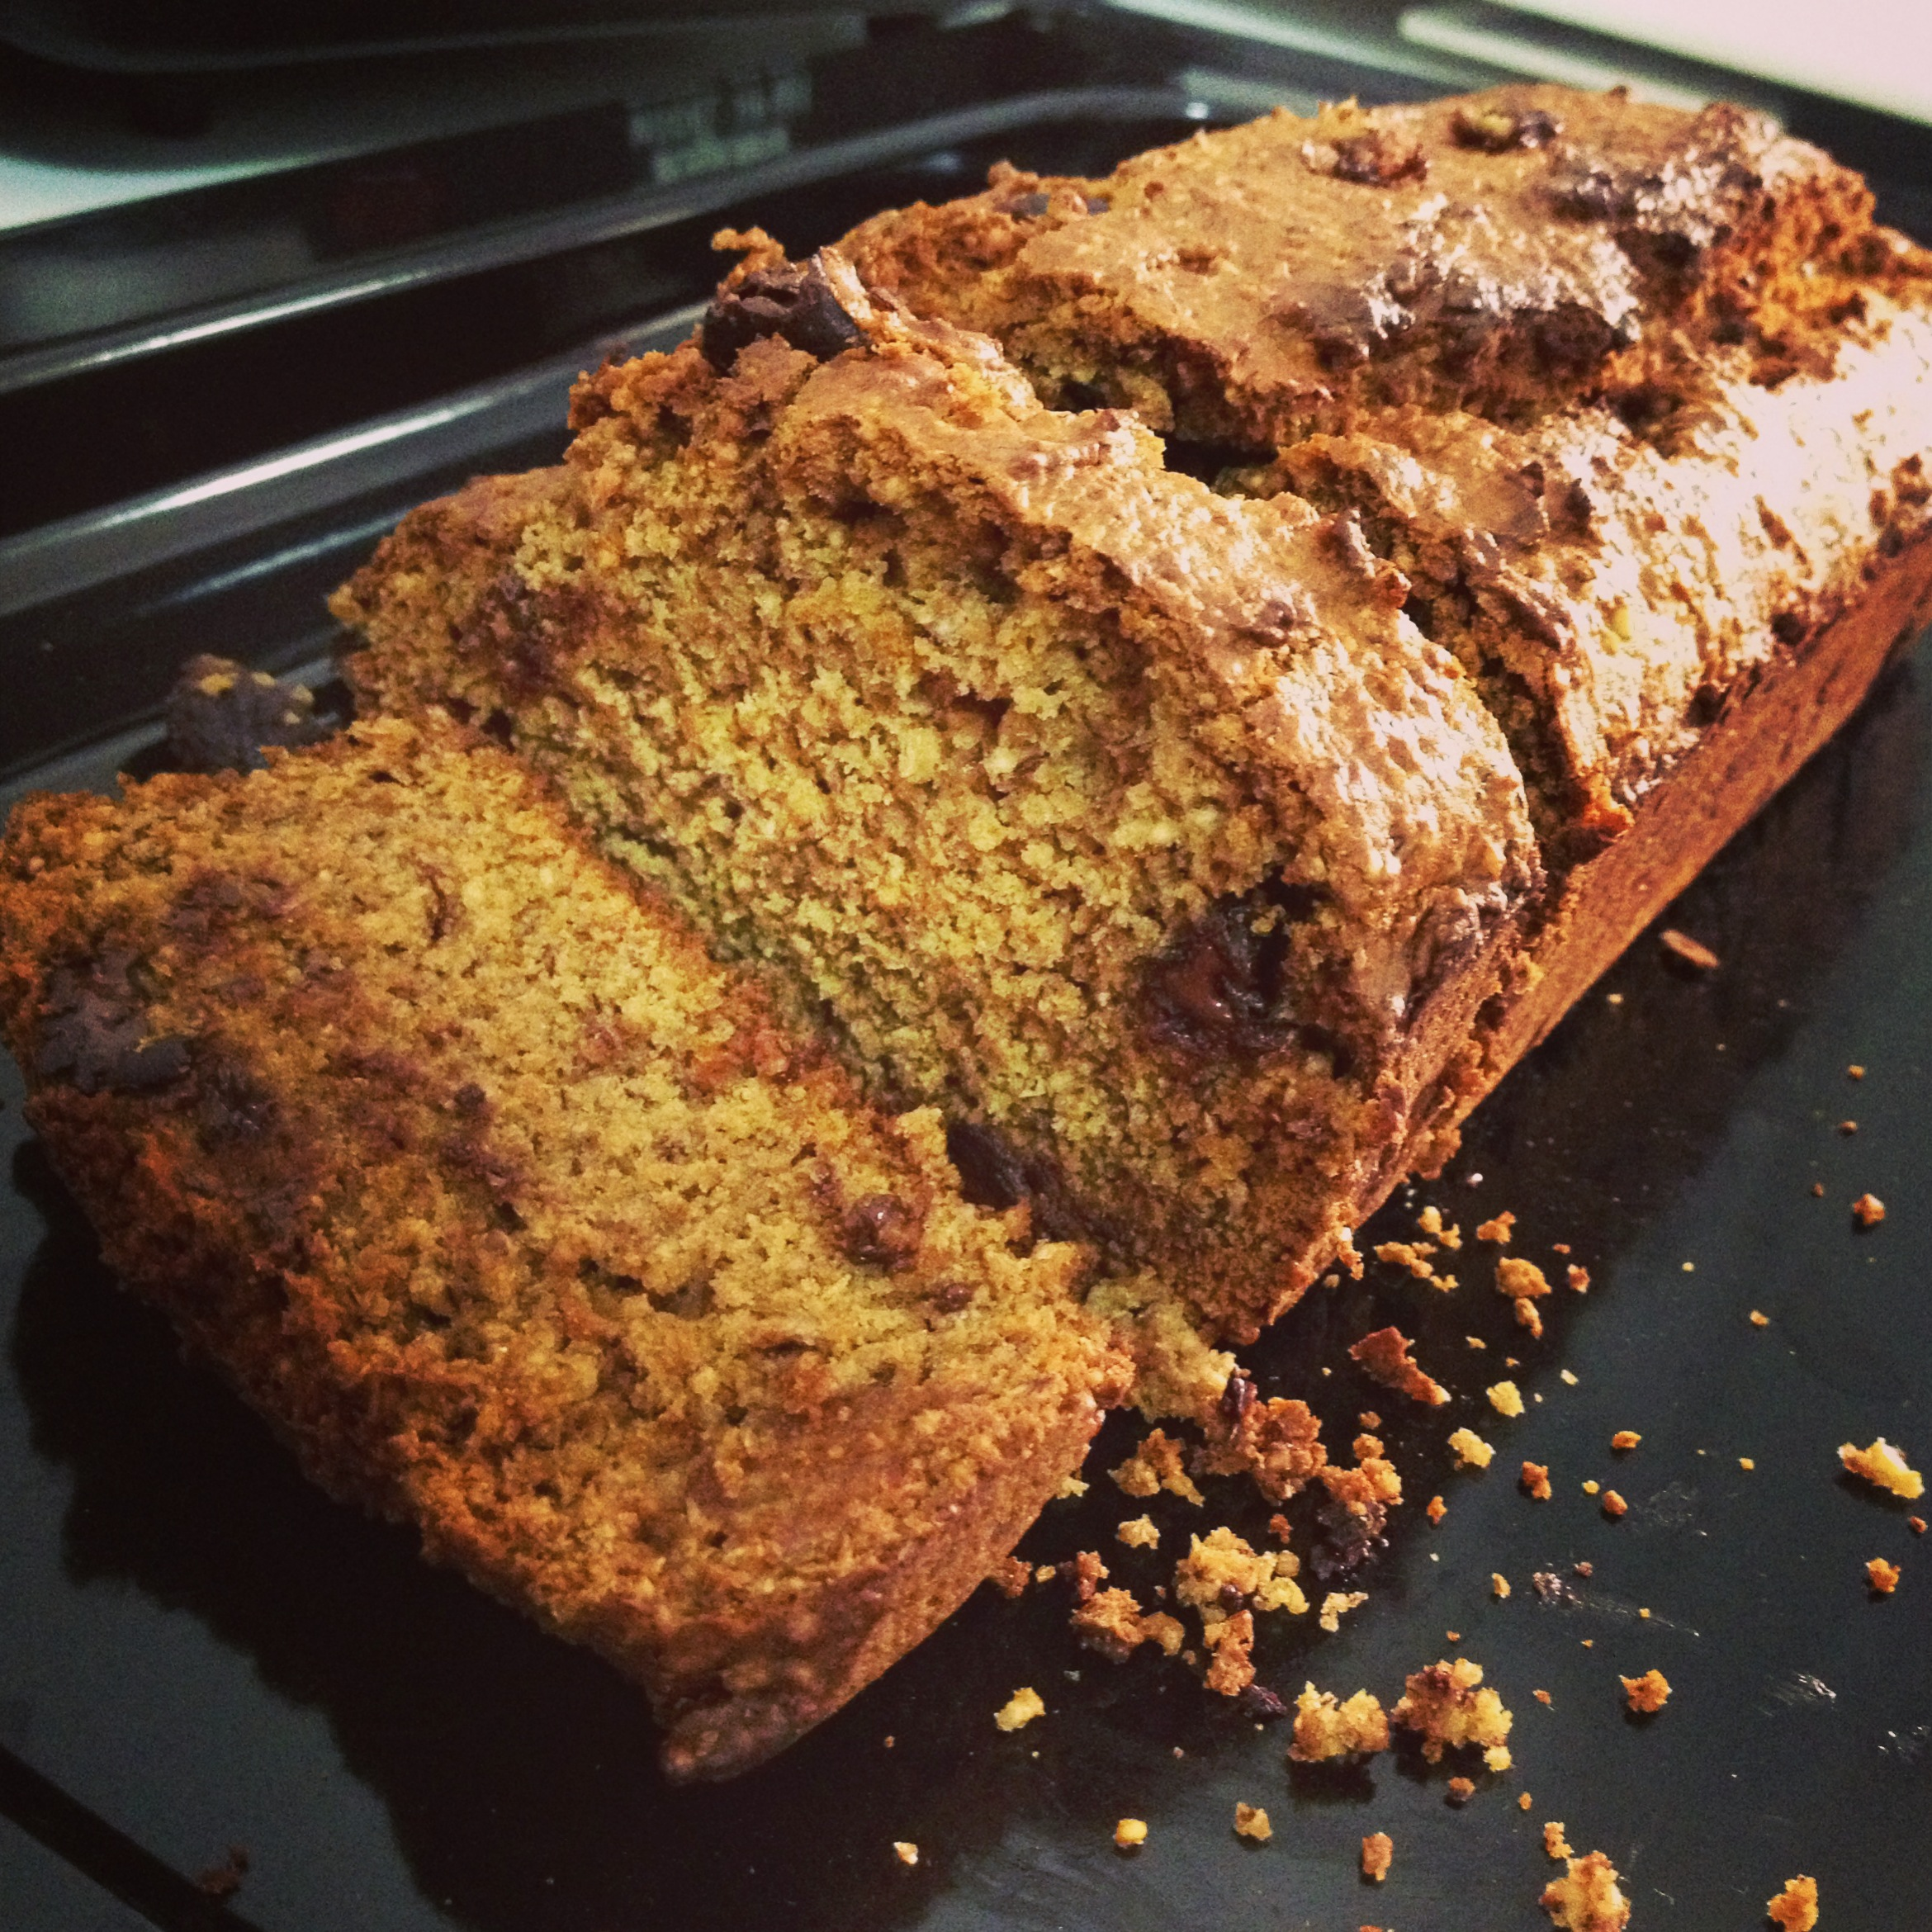 Egg and dairy free banana bread mr mrs vegan we had some left over ripe bananas and i decided to try making banana bread loaf i love using easy and fuss free recipes that does not require too much forumfinder Images